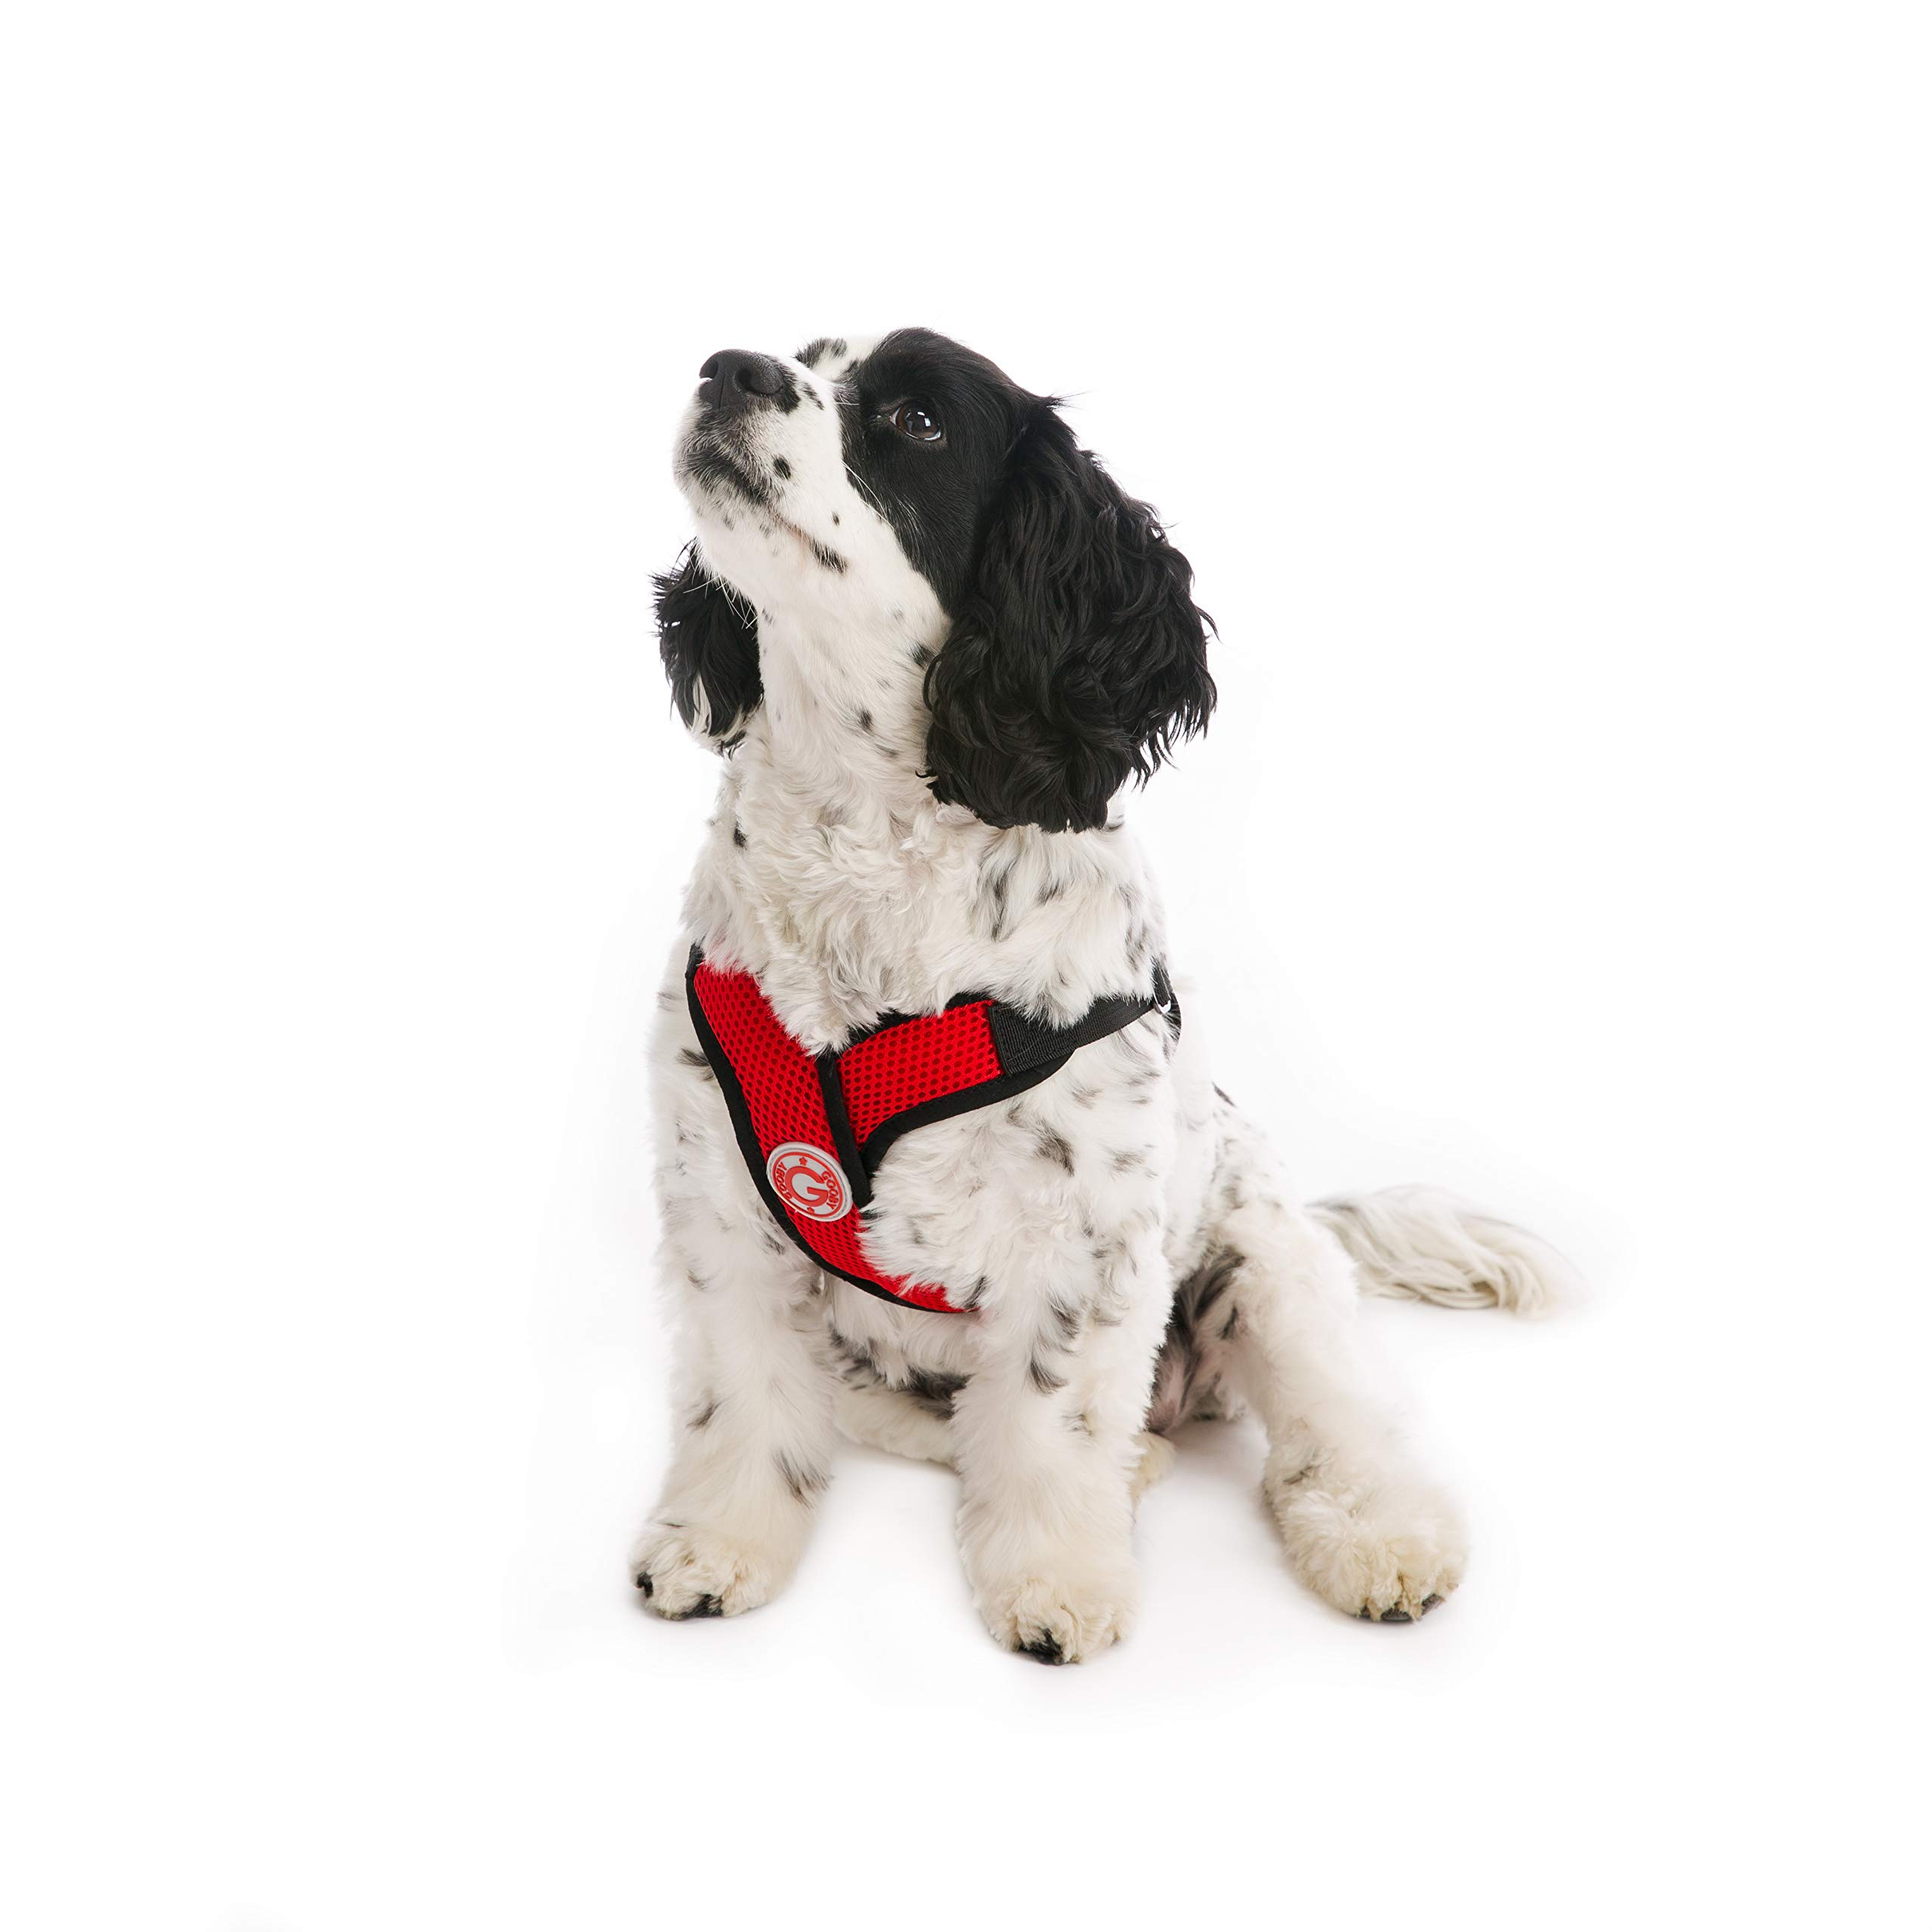 Gooby - Comfort X Step-in Harness, Choke Free Small Dog Harness with Micro Suede Trimming and Patented X Frame, Red, X-Large